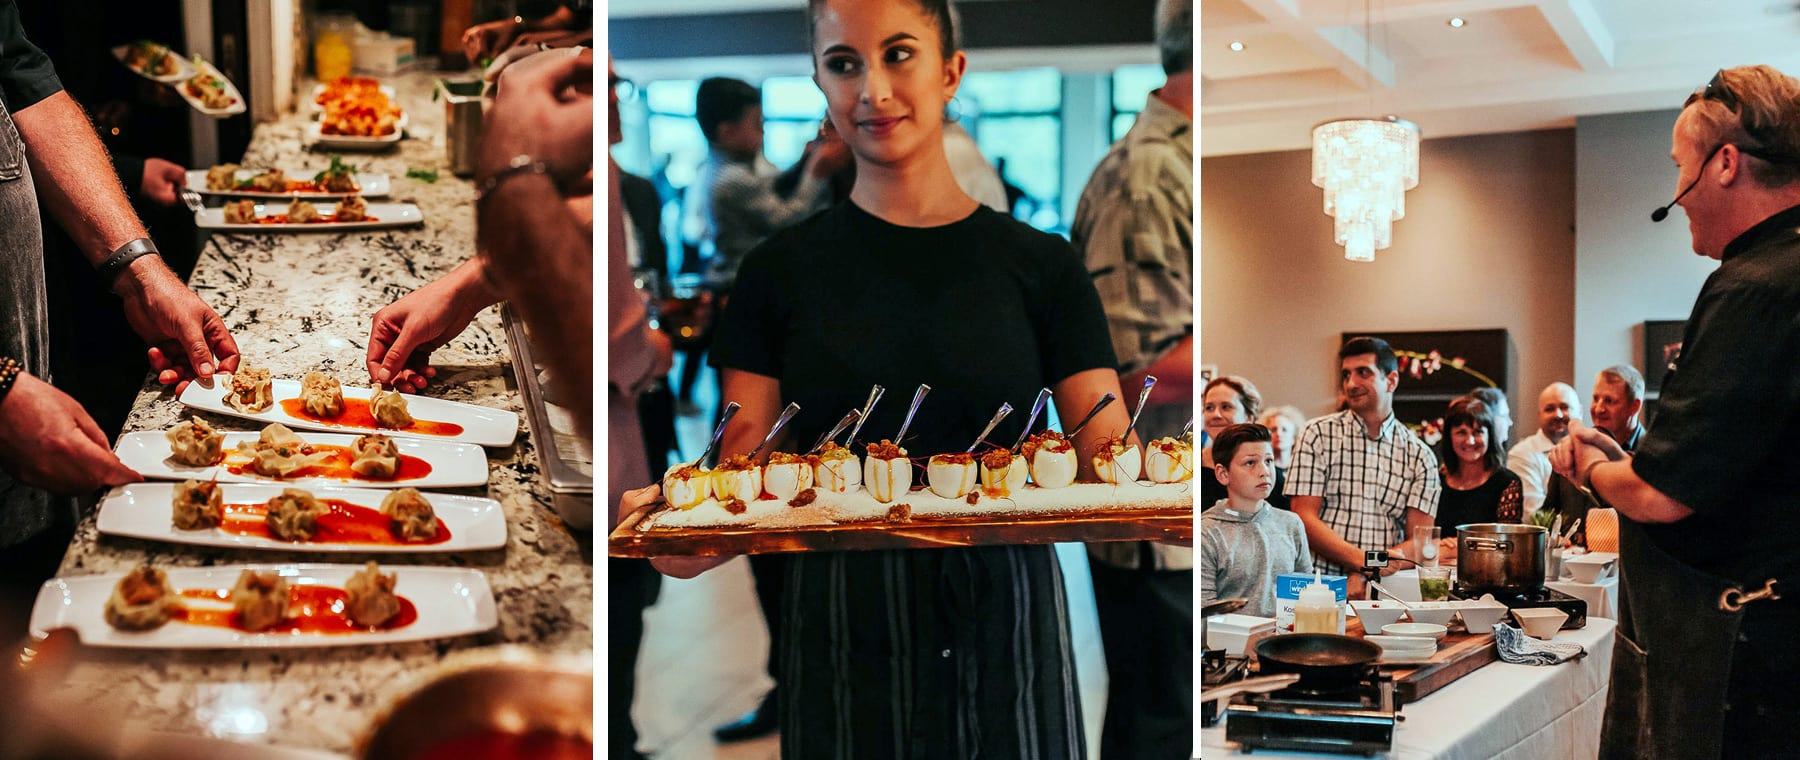 Celebrated American chefs share spotlight with Michael Blackie at NeXT event